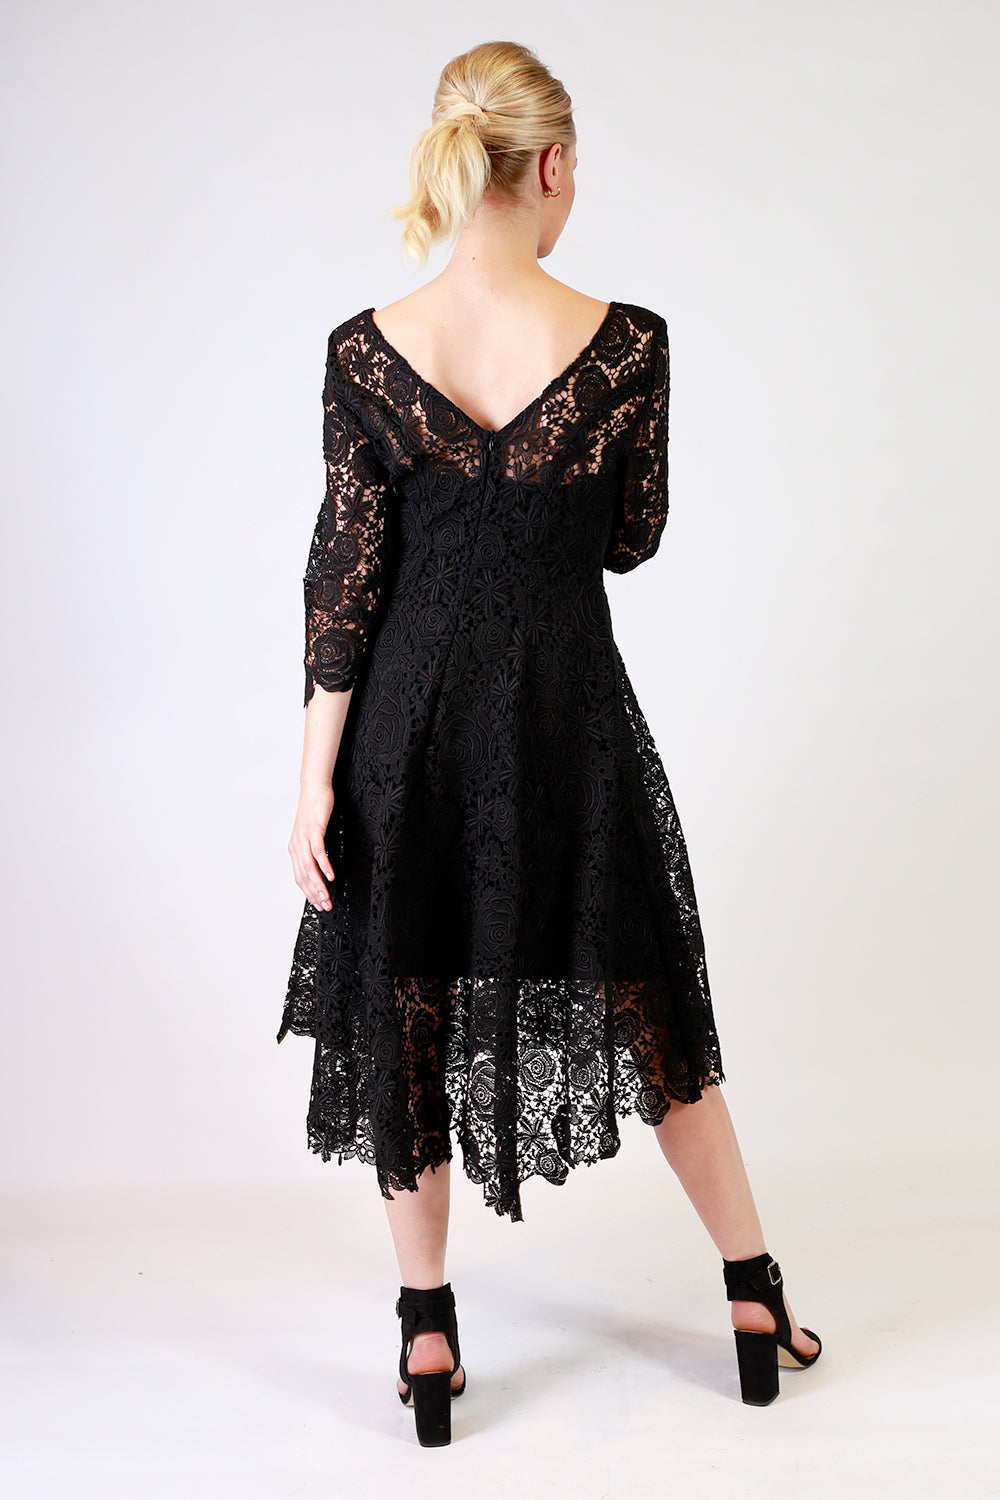 Summer Stunner Lace Dress | Black and White Lace Dress | Autumn Winter 19 Annah Stretton Fashion NZ